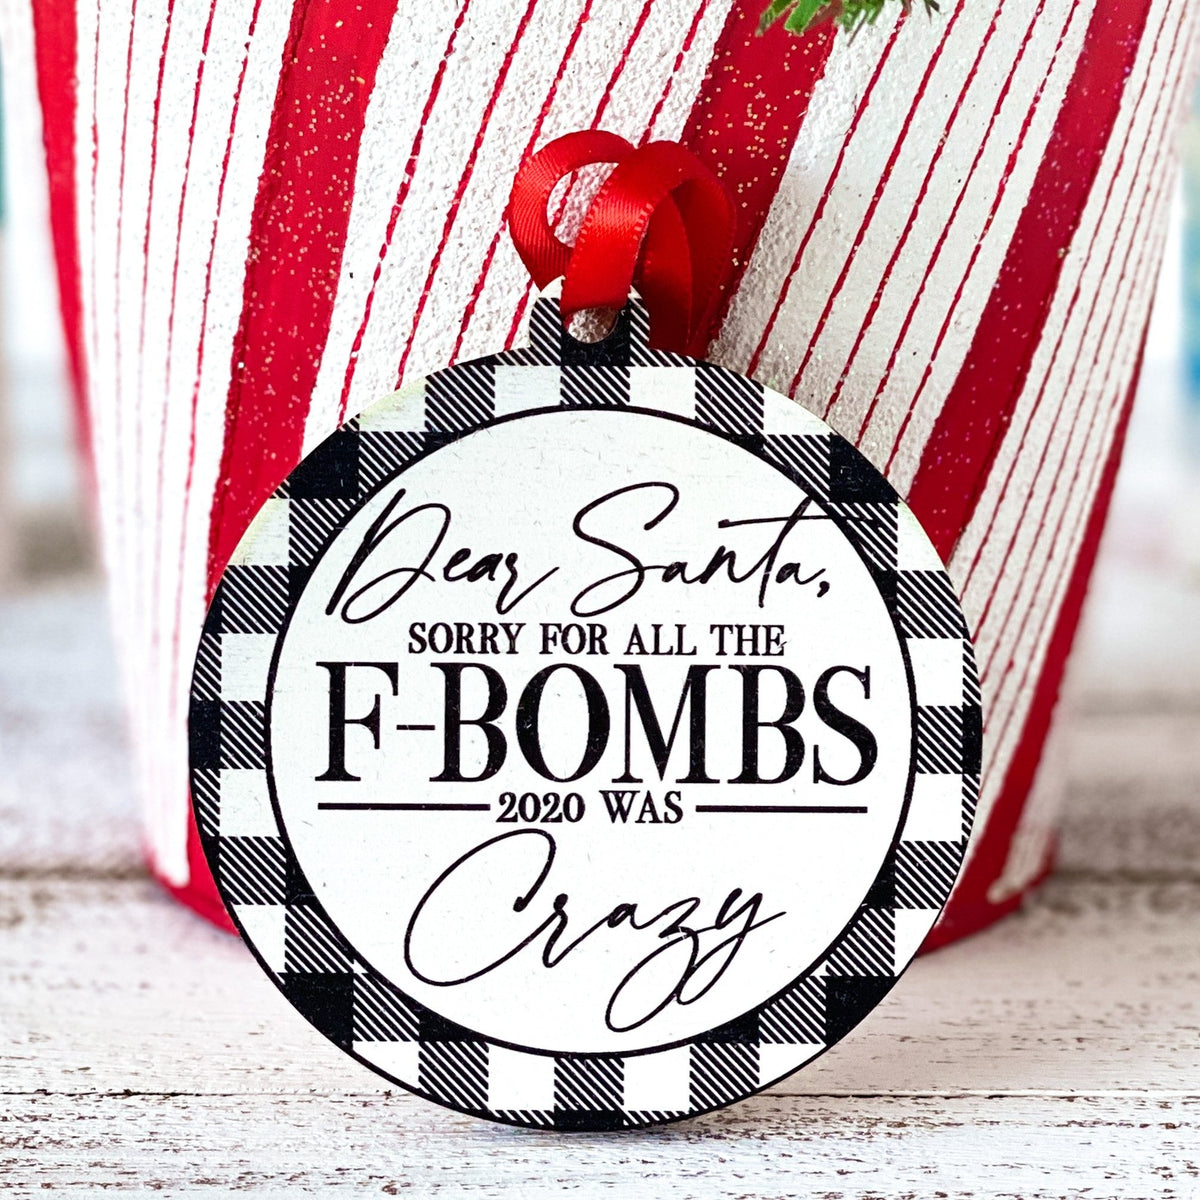 Black & White Buffalo Plaid, Dear Santa, Sorry For The F-Bombs 2020 Was Crazy Wooden Ornament